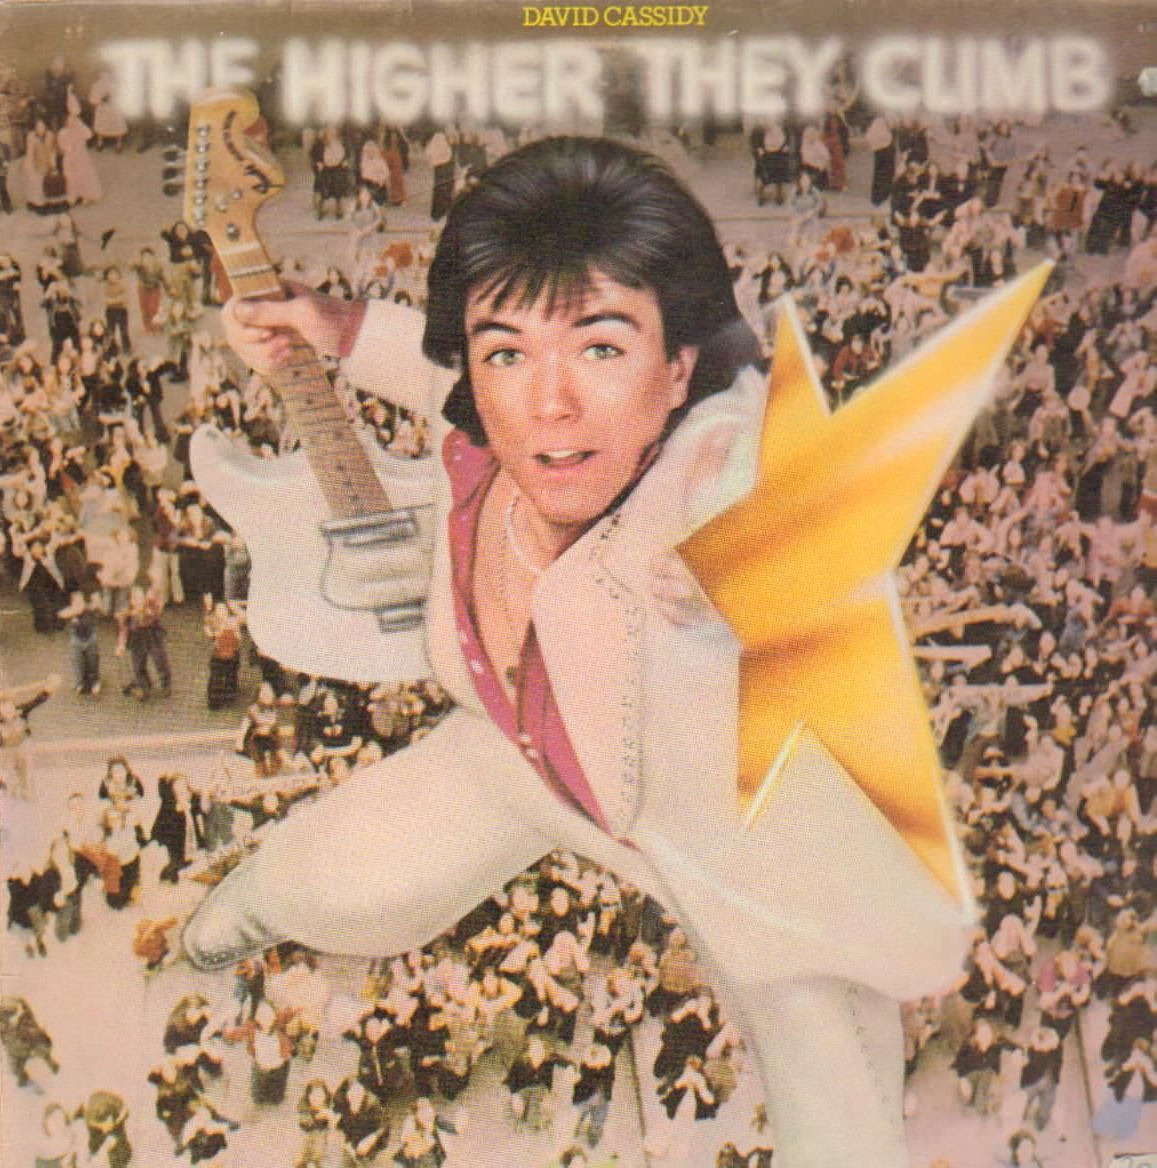 The Higher They Climb cover